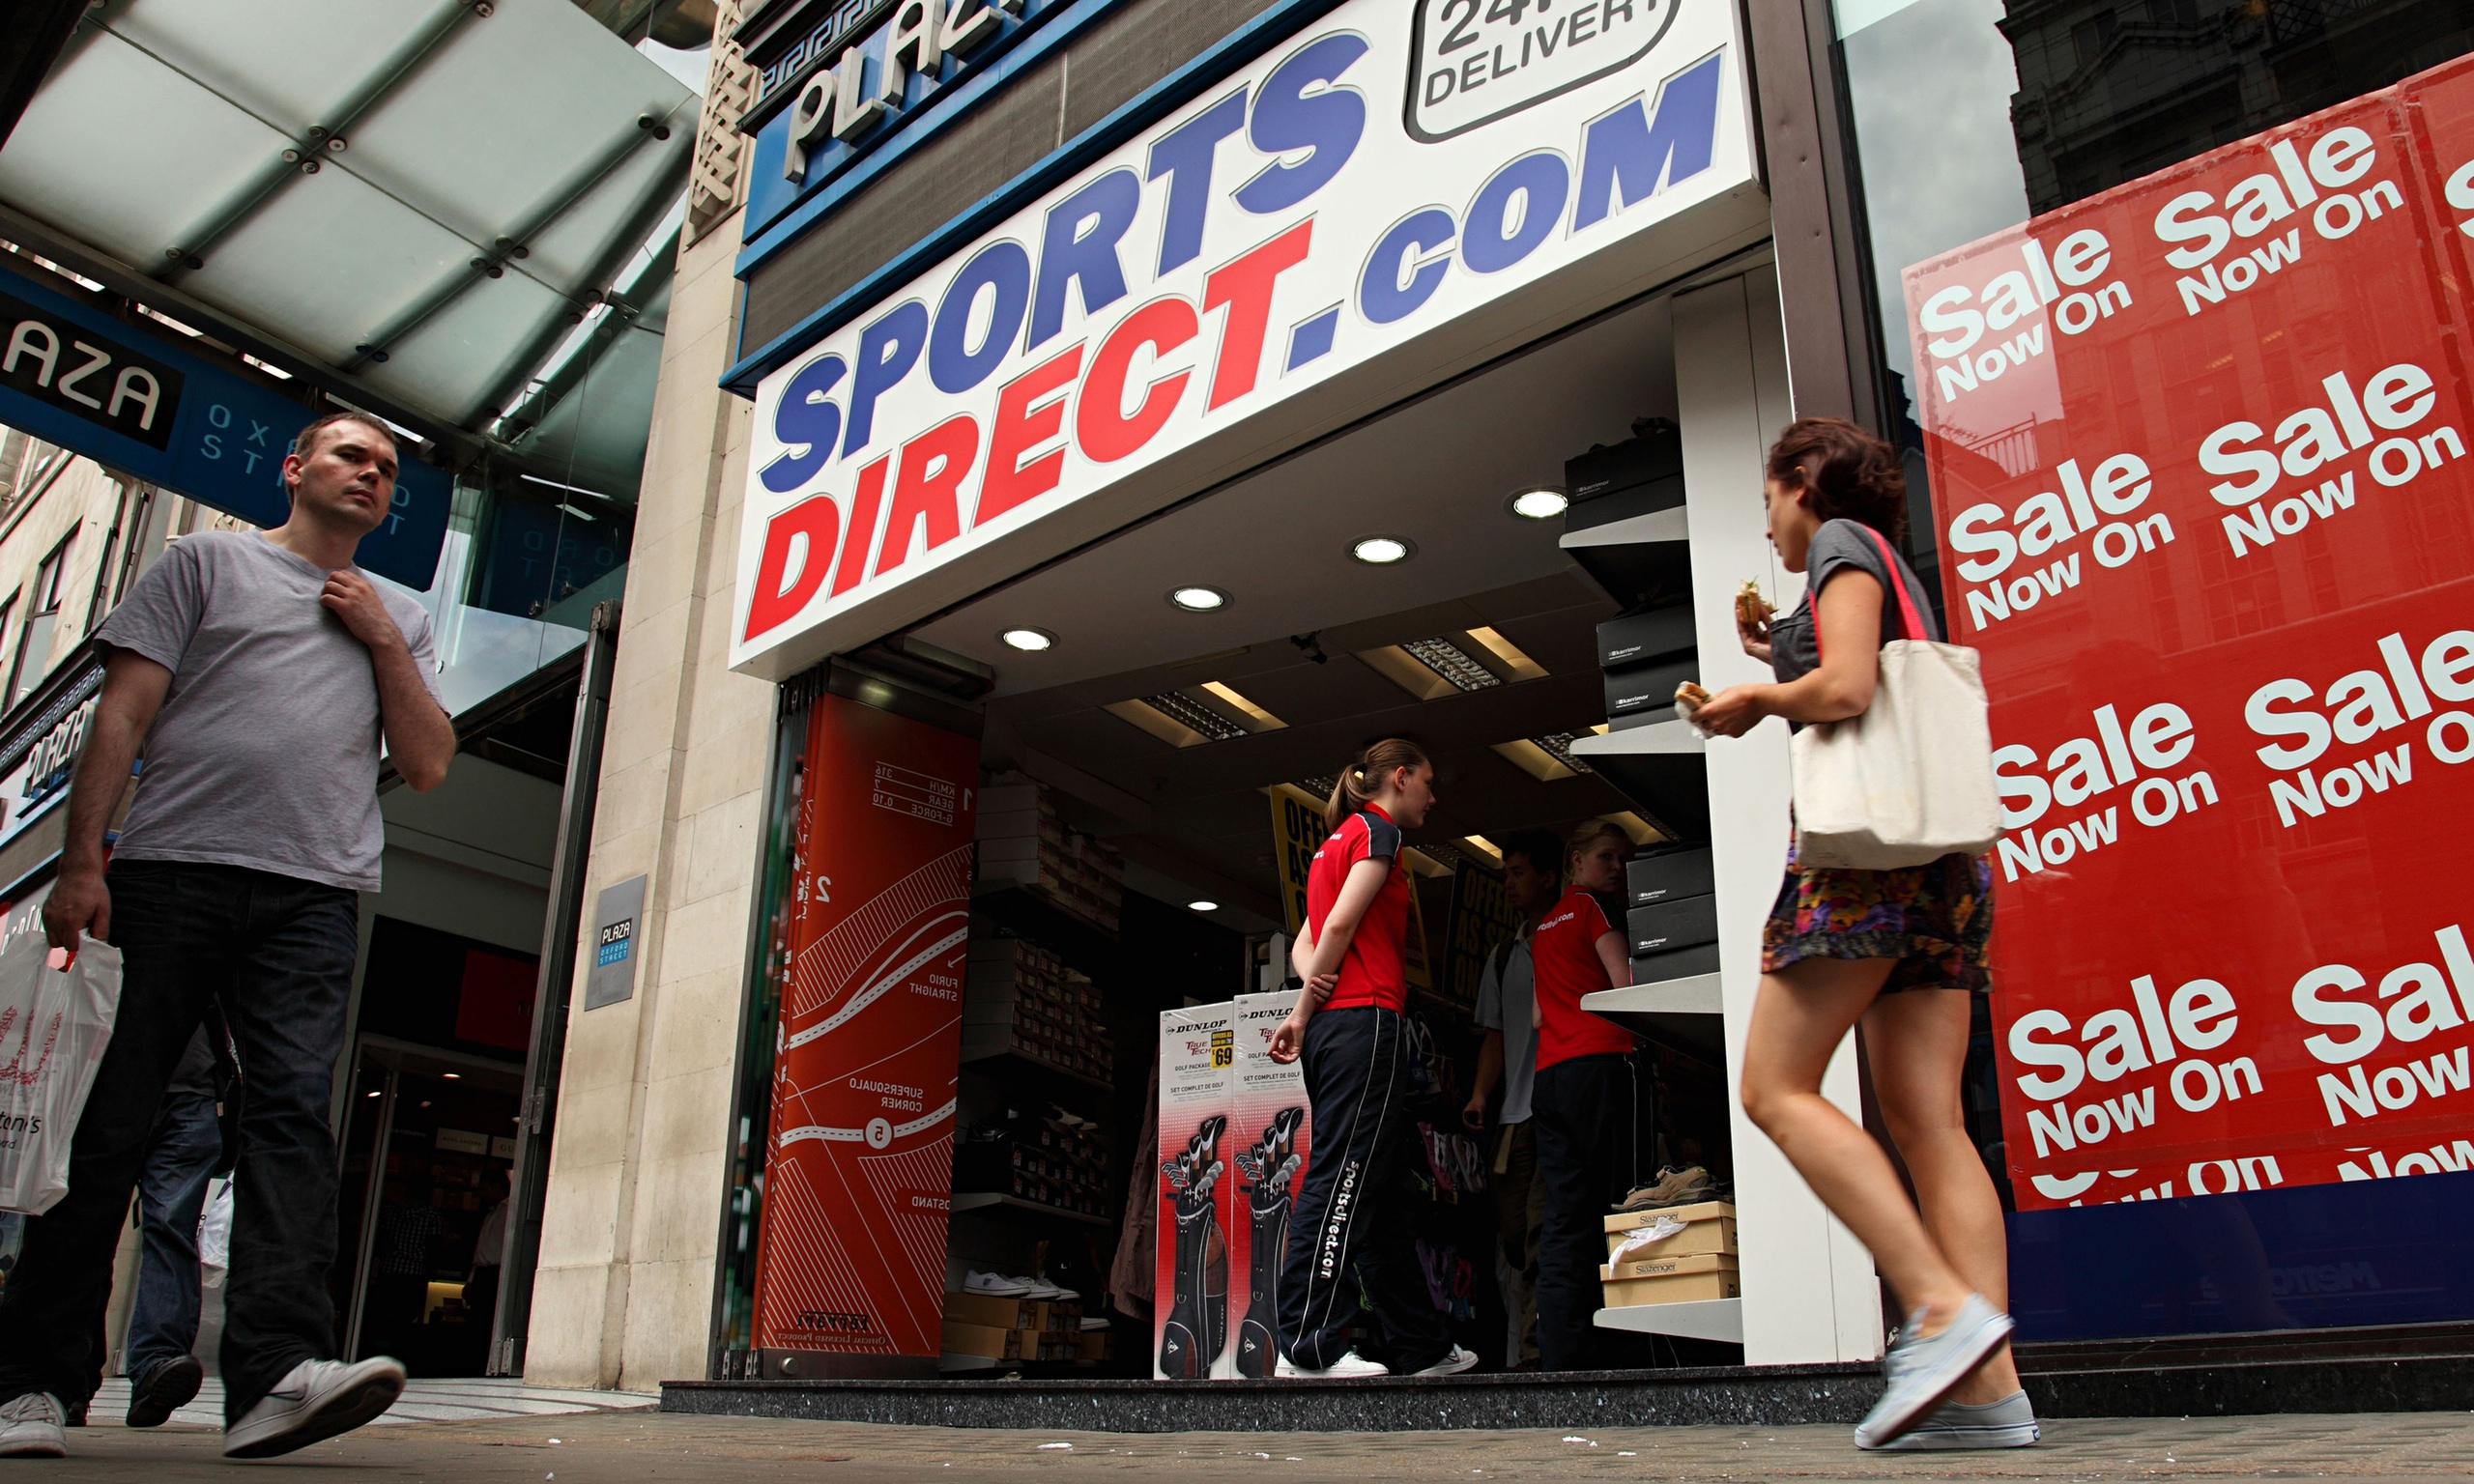 sports direct ireland - DriverLayer Search Engine